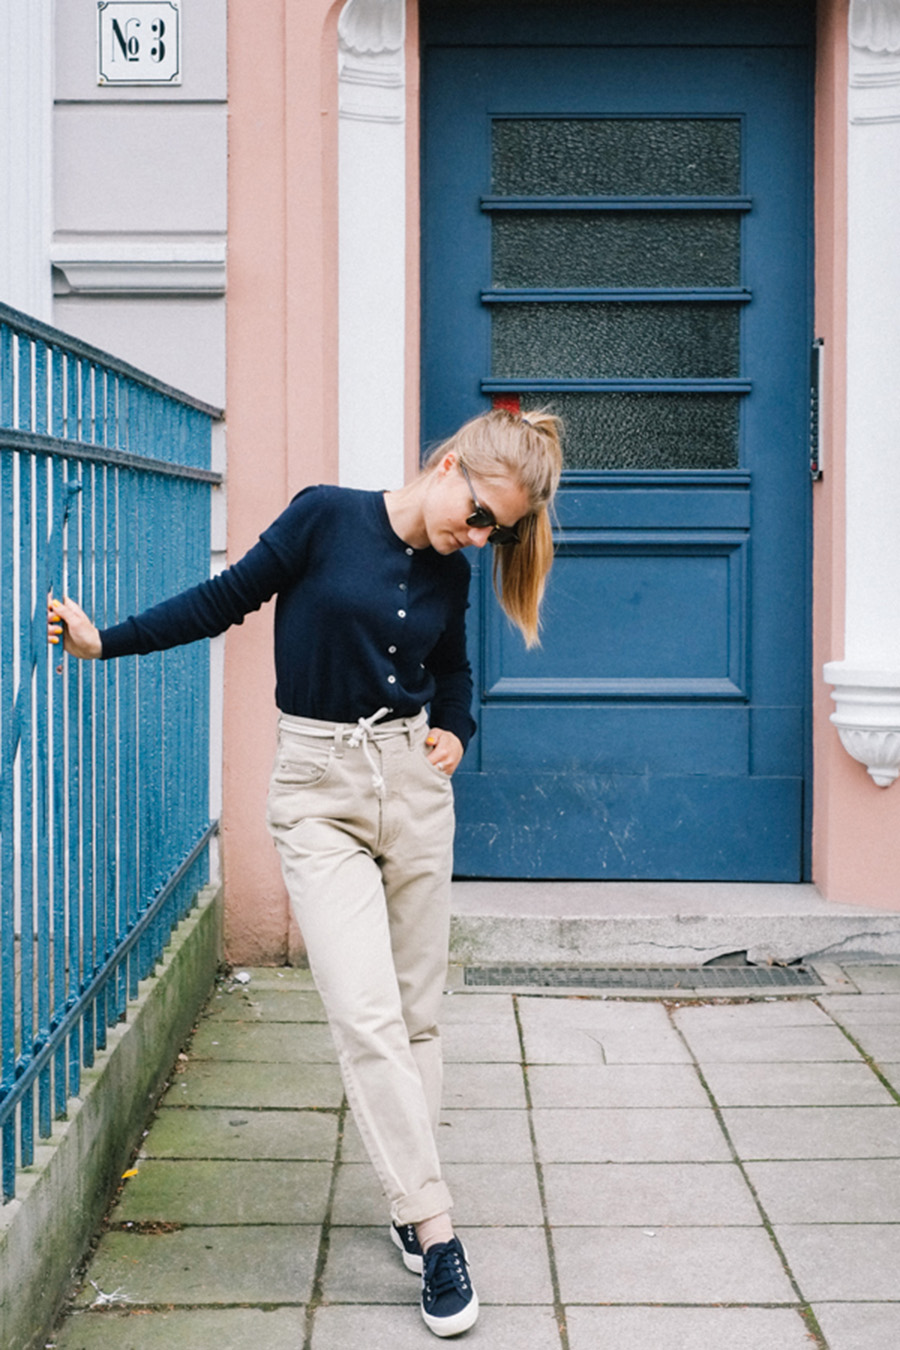 NicetohaveMag_fairfashionOOTD_PeopleTree_navy_Superga_Joop_Outfit_fair_fashion_slowfashion_Kleiderkreisel